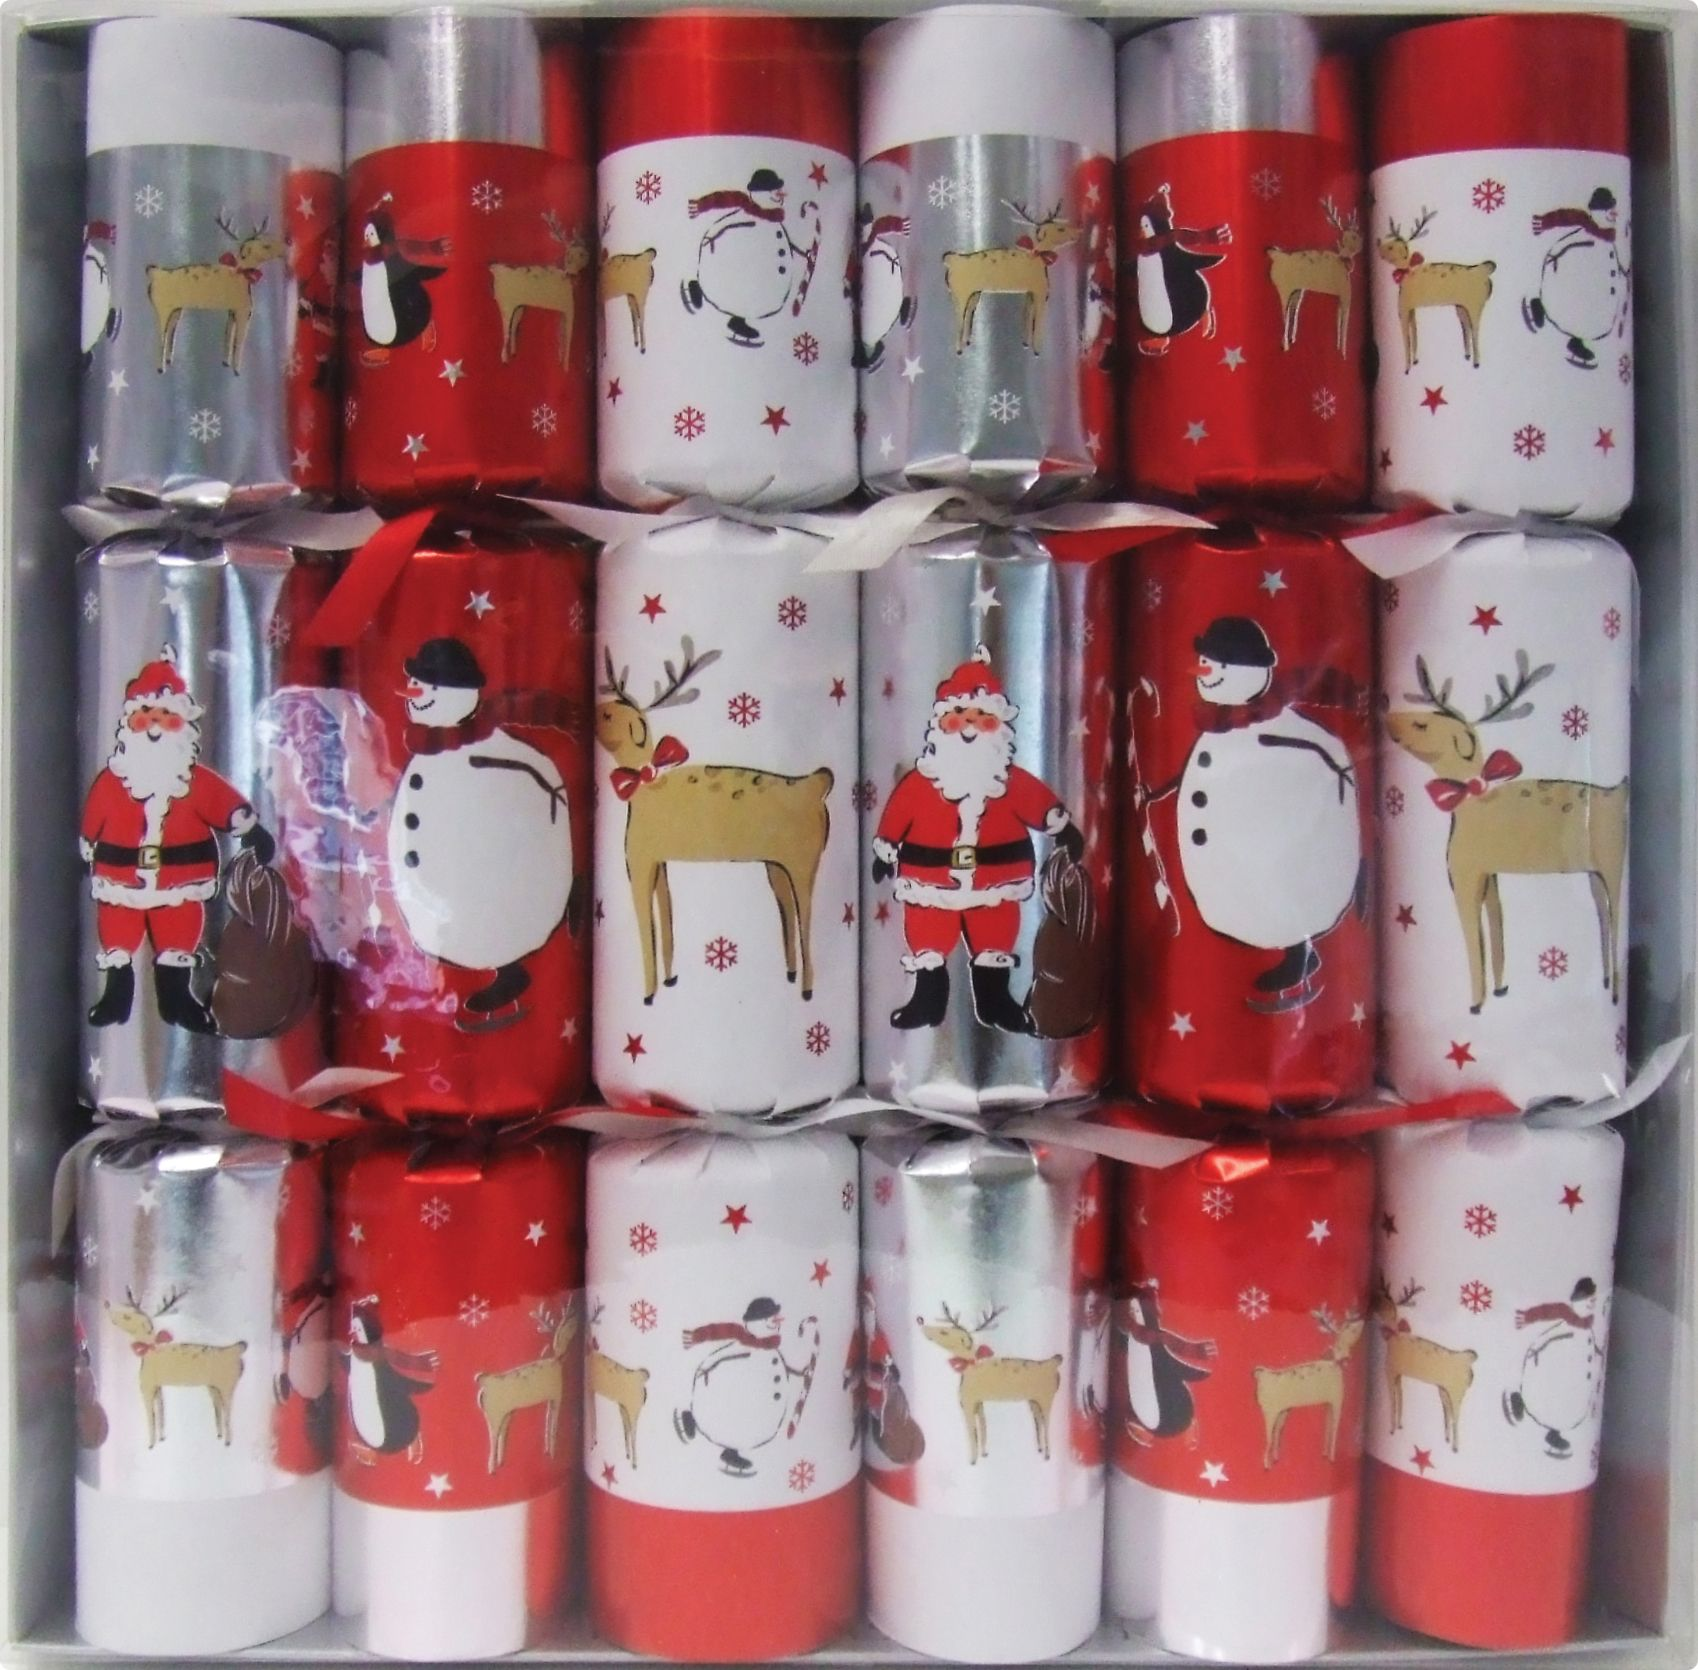 Christmas Decorations reviews, cheap prices, uk delivery, compare prices